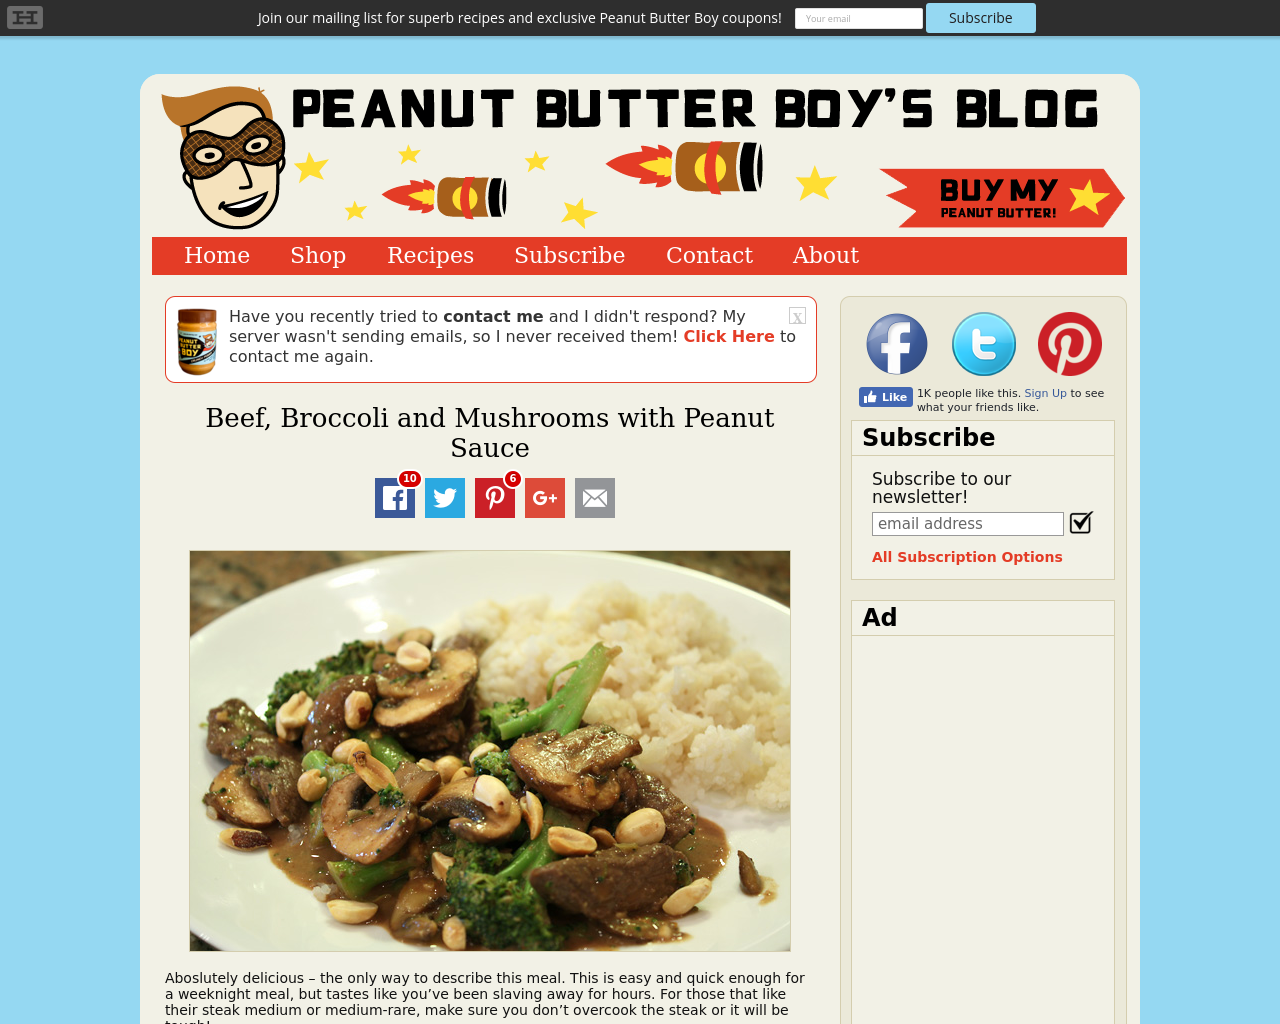 Peanut-Butter-Boy-Advertising-Reviews-Pricing